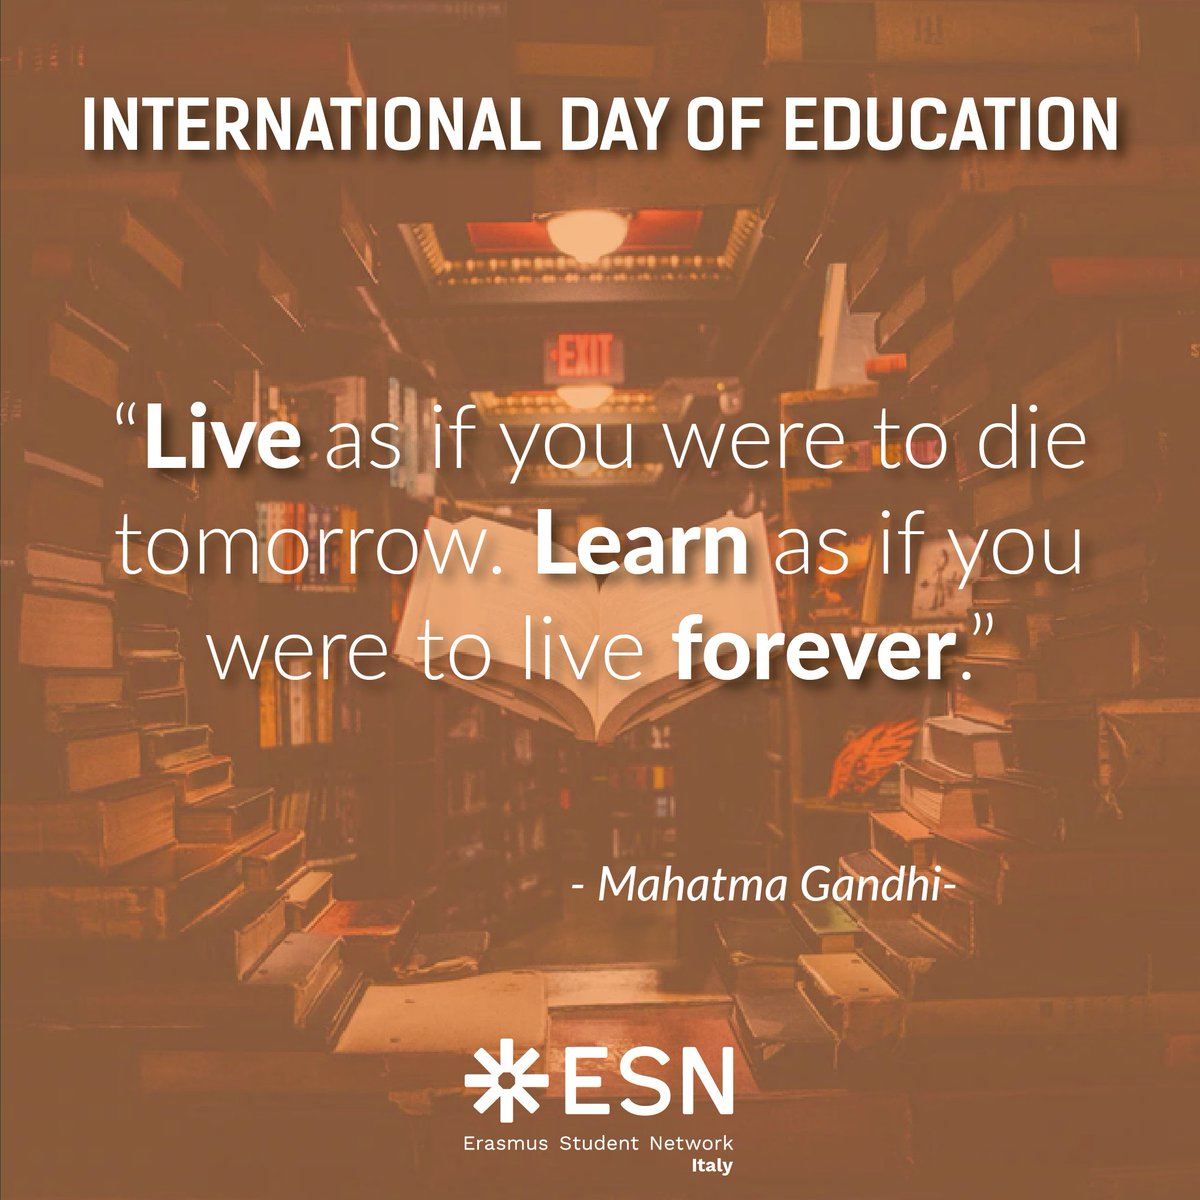 #educationday